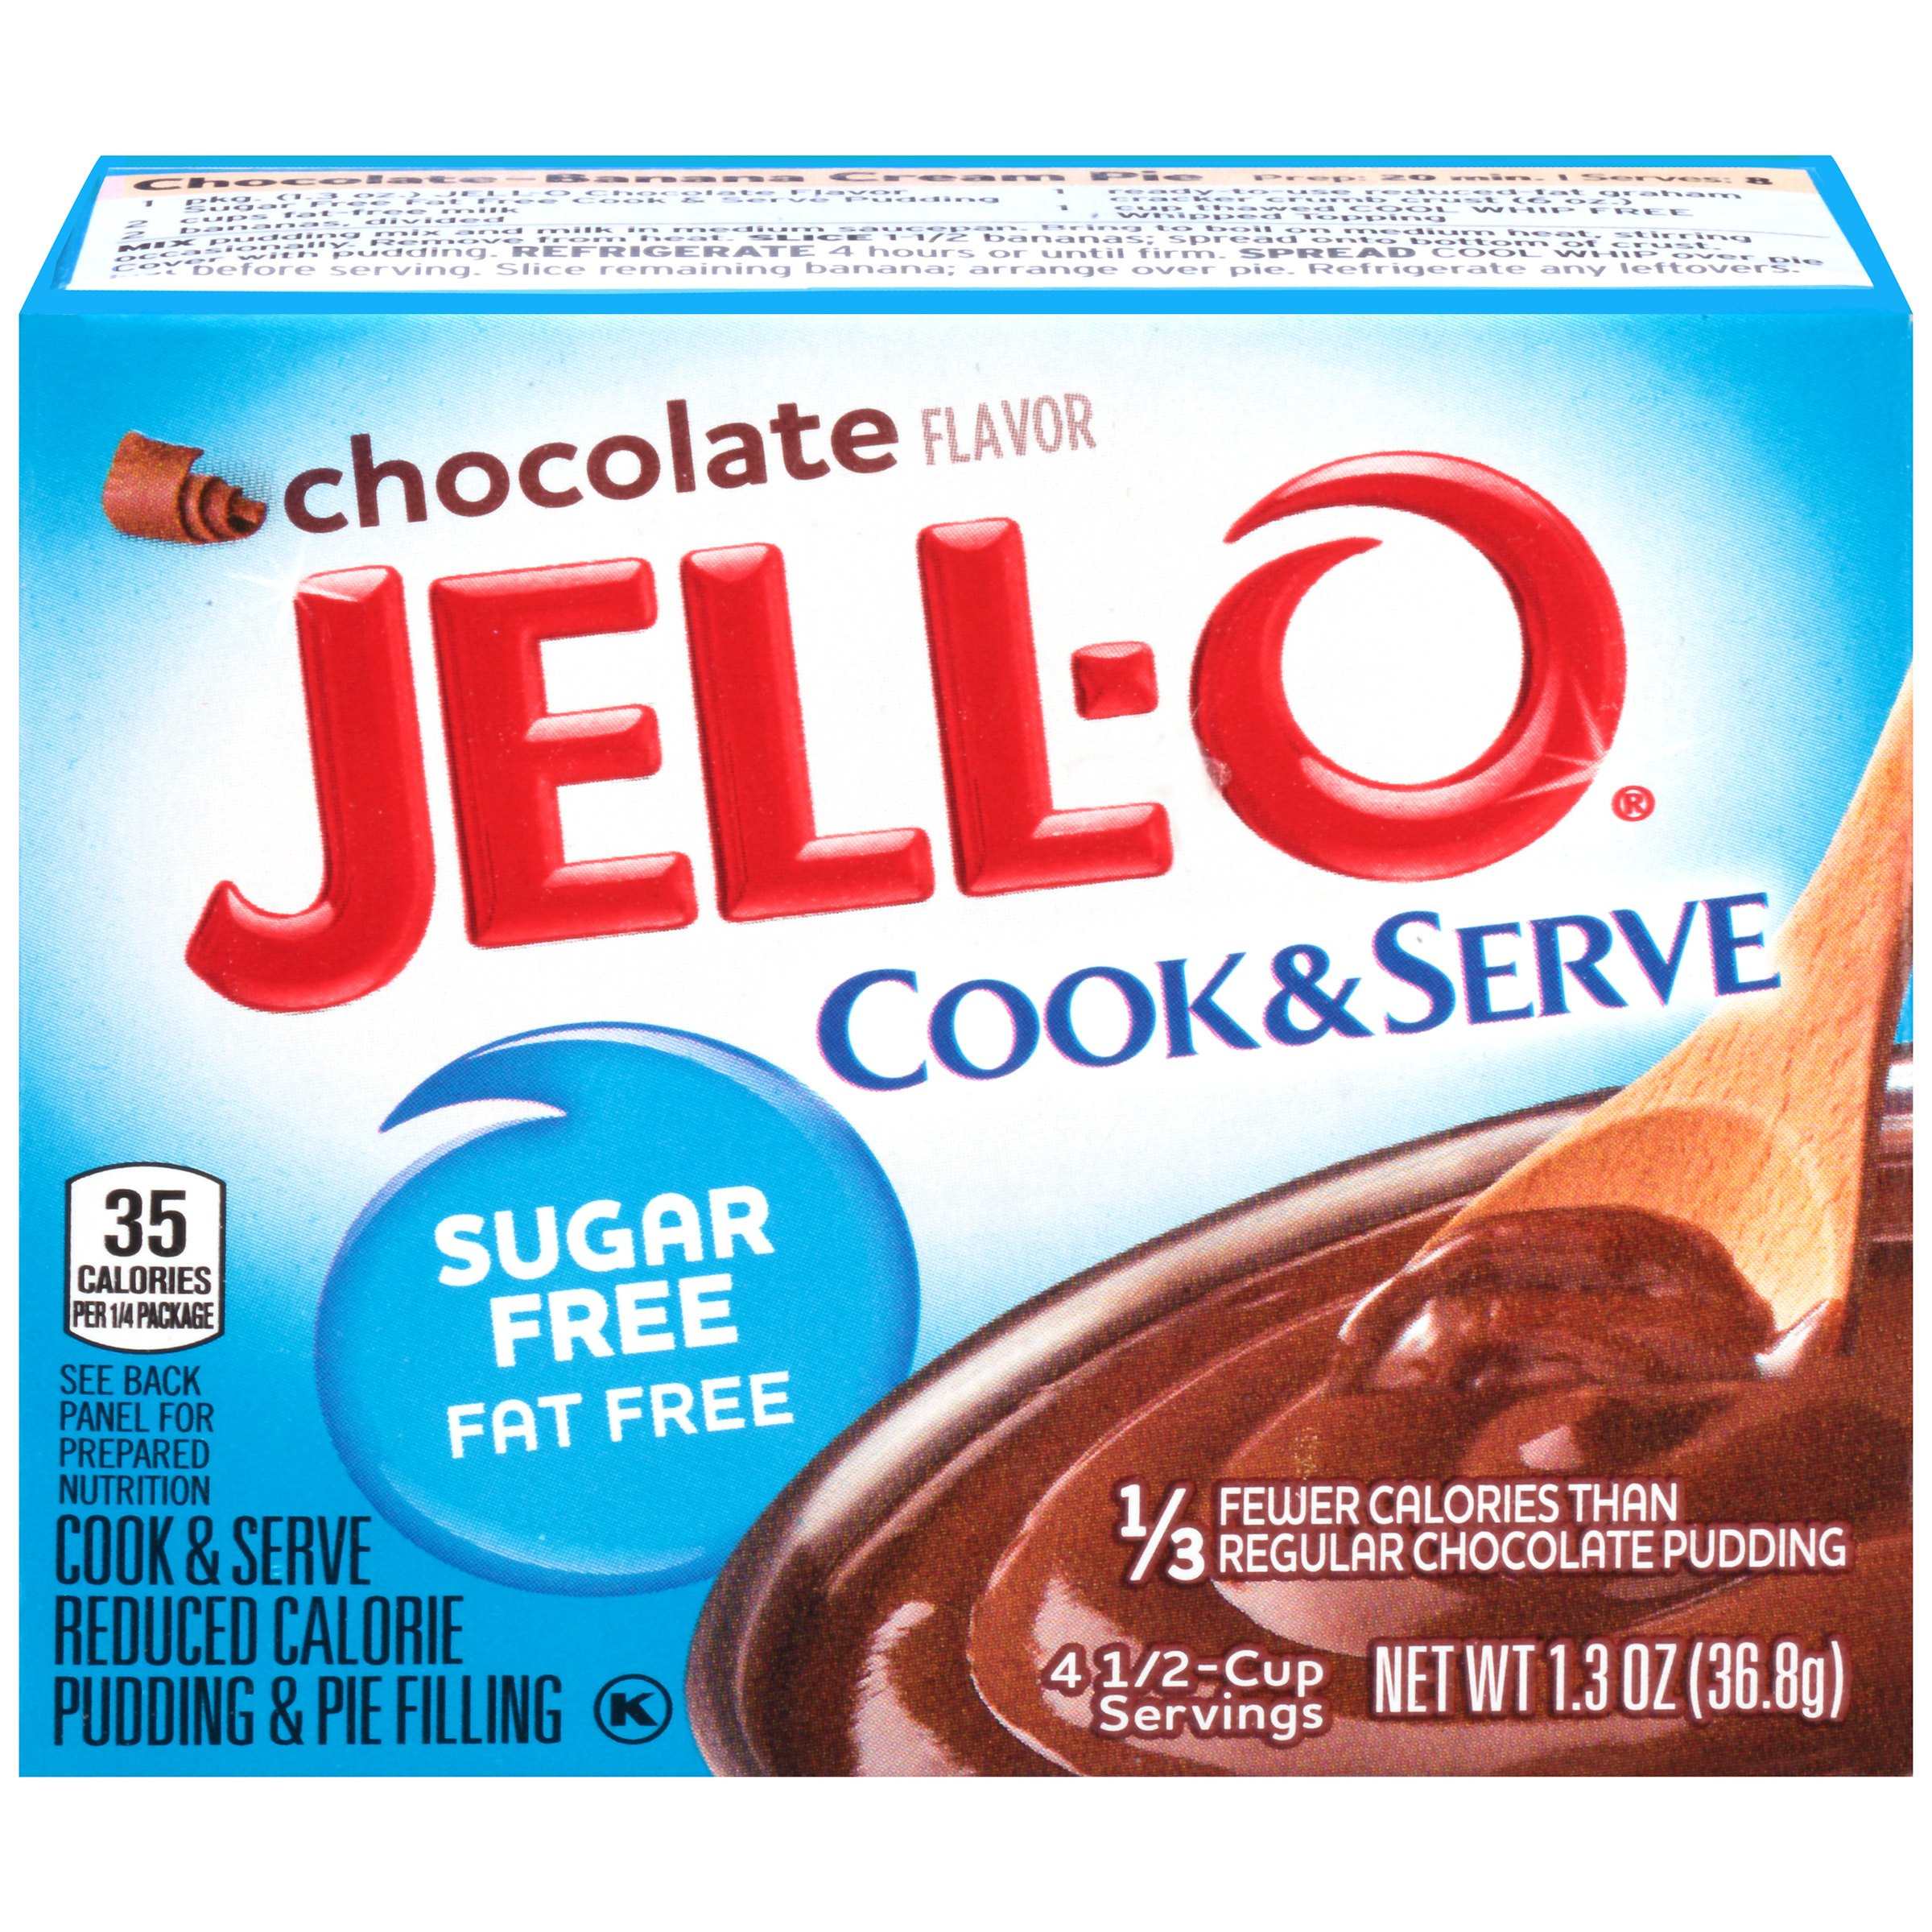 (4 Pack) Jell-O Instant Sugar-Free Fat-Free Chocolate Pudding & Pie Filling, 1.3 oz Box